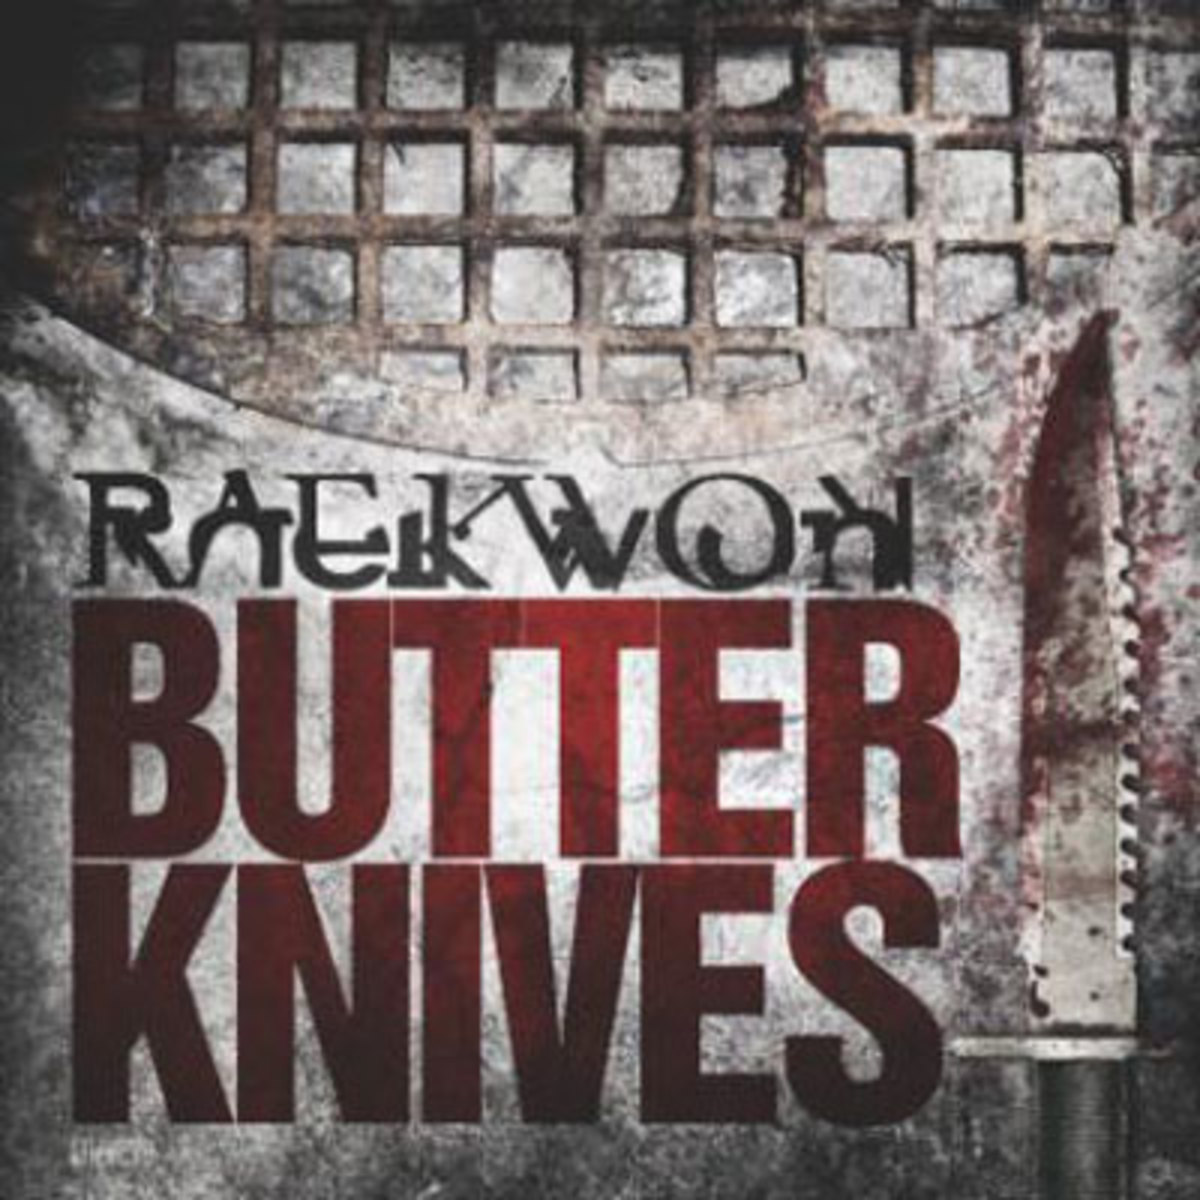 raekwon-butterknives.jpg